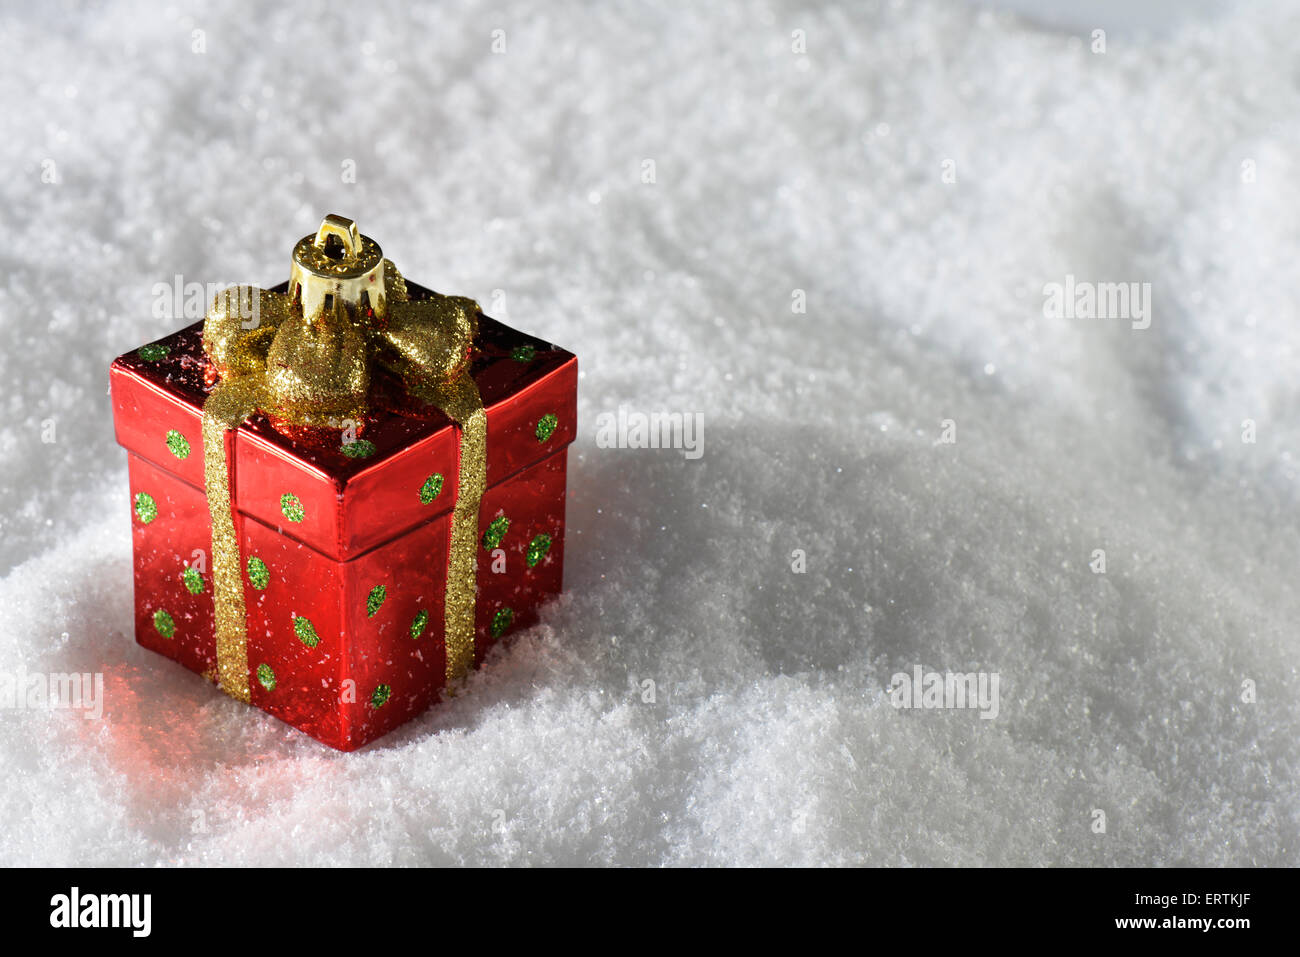 Christmas decoration bundle present gift on snow - Stock Image